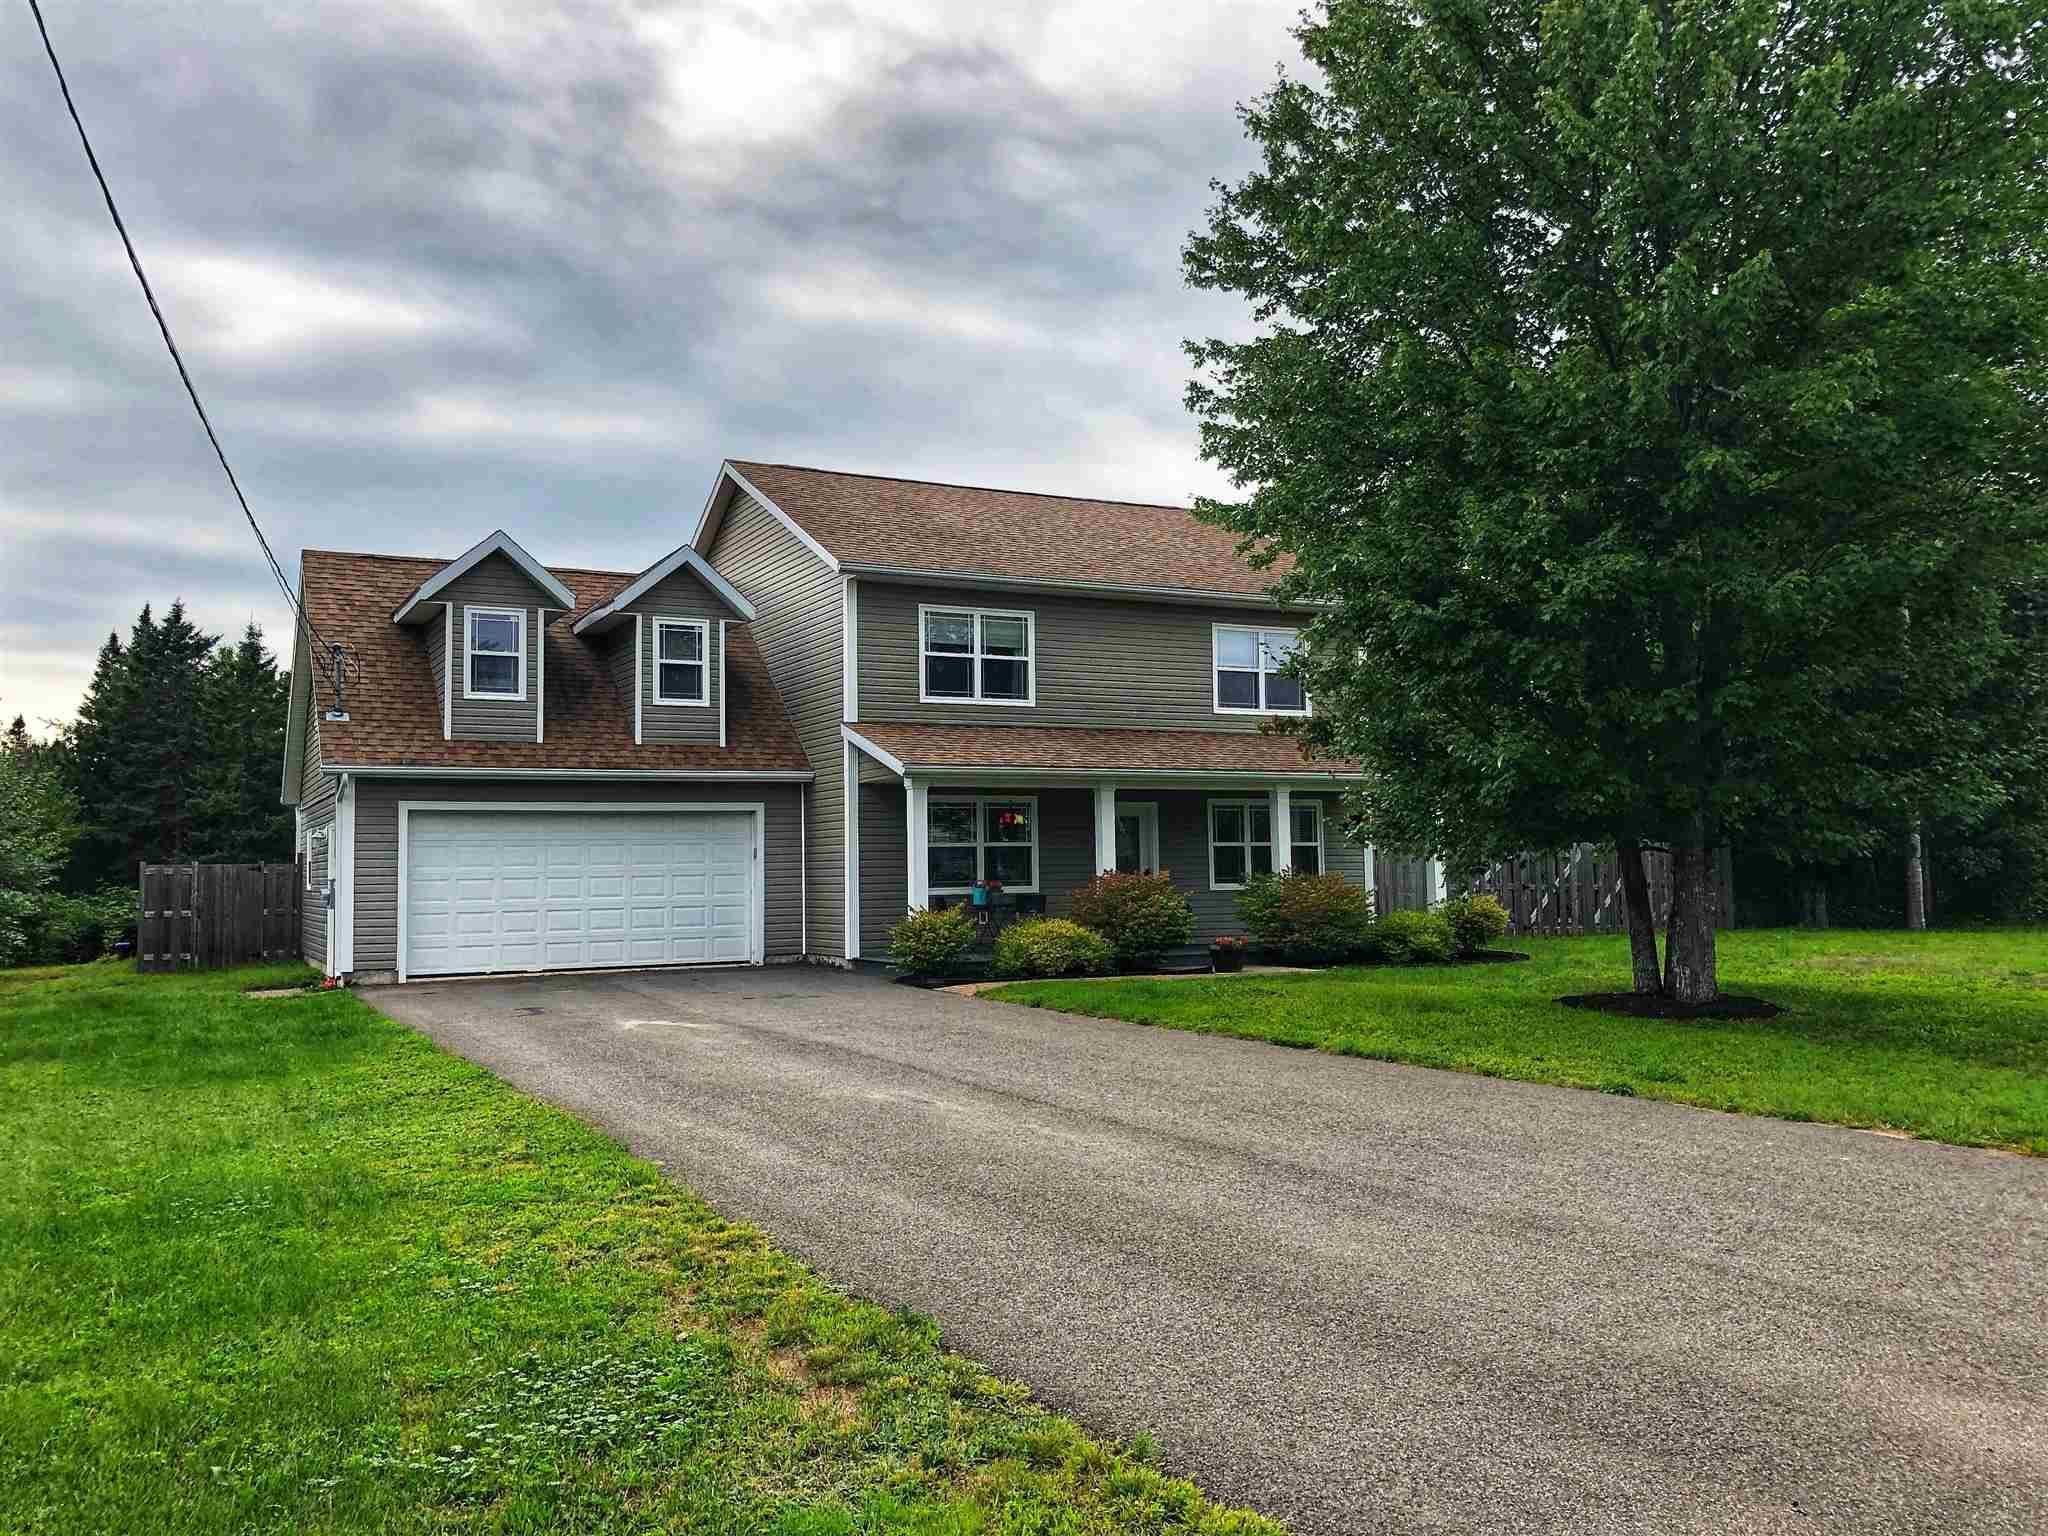 Main Photo: 197 Belle Drive in Meadowvale: 400-Annapolis County Residential for sale (Annapolis Valley)  : MLS®# 202120898